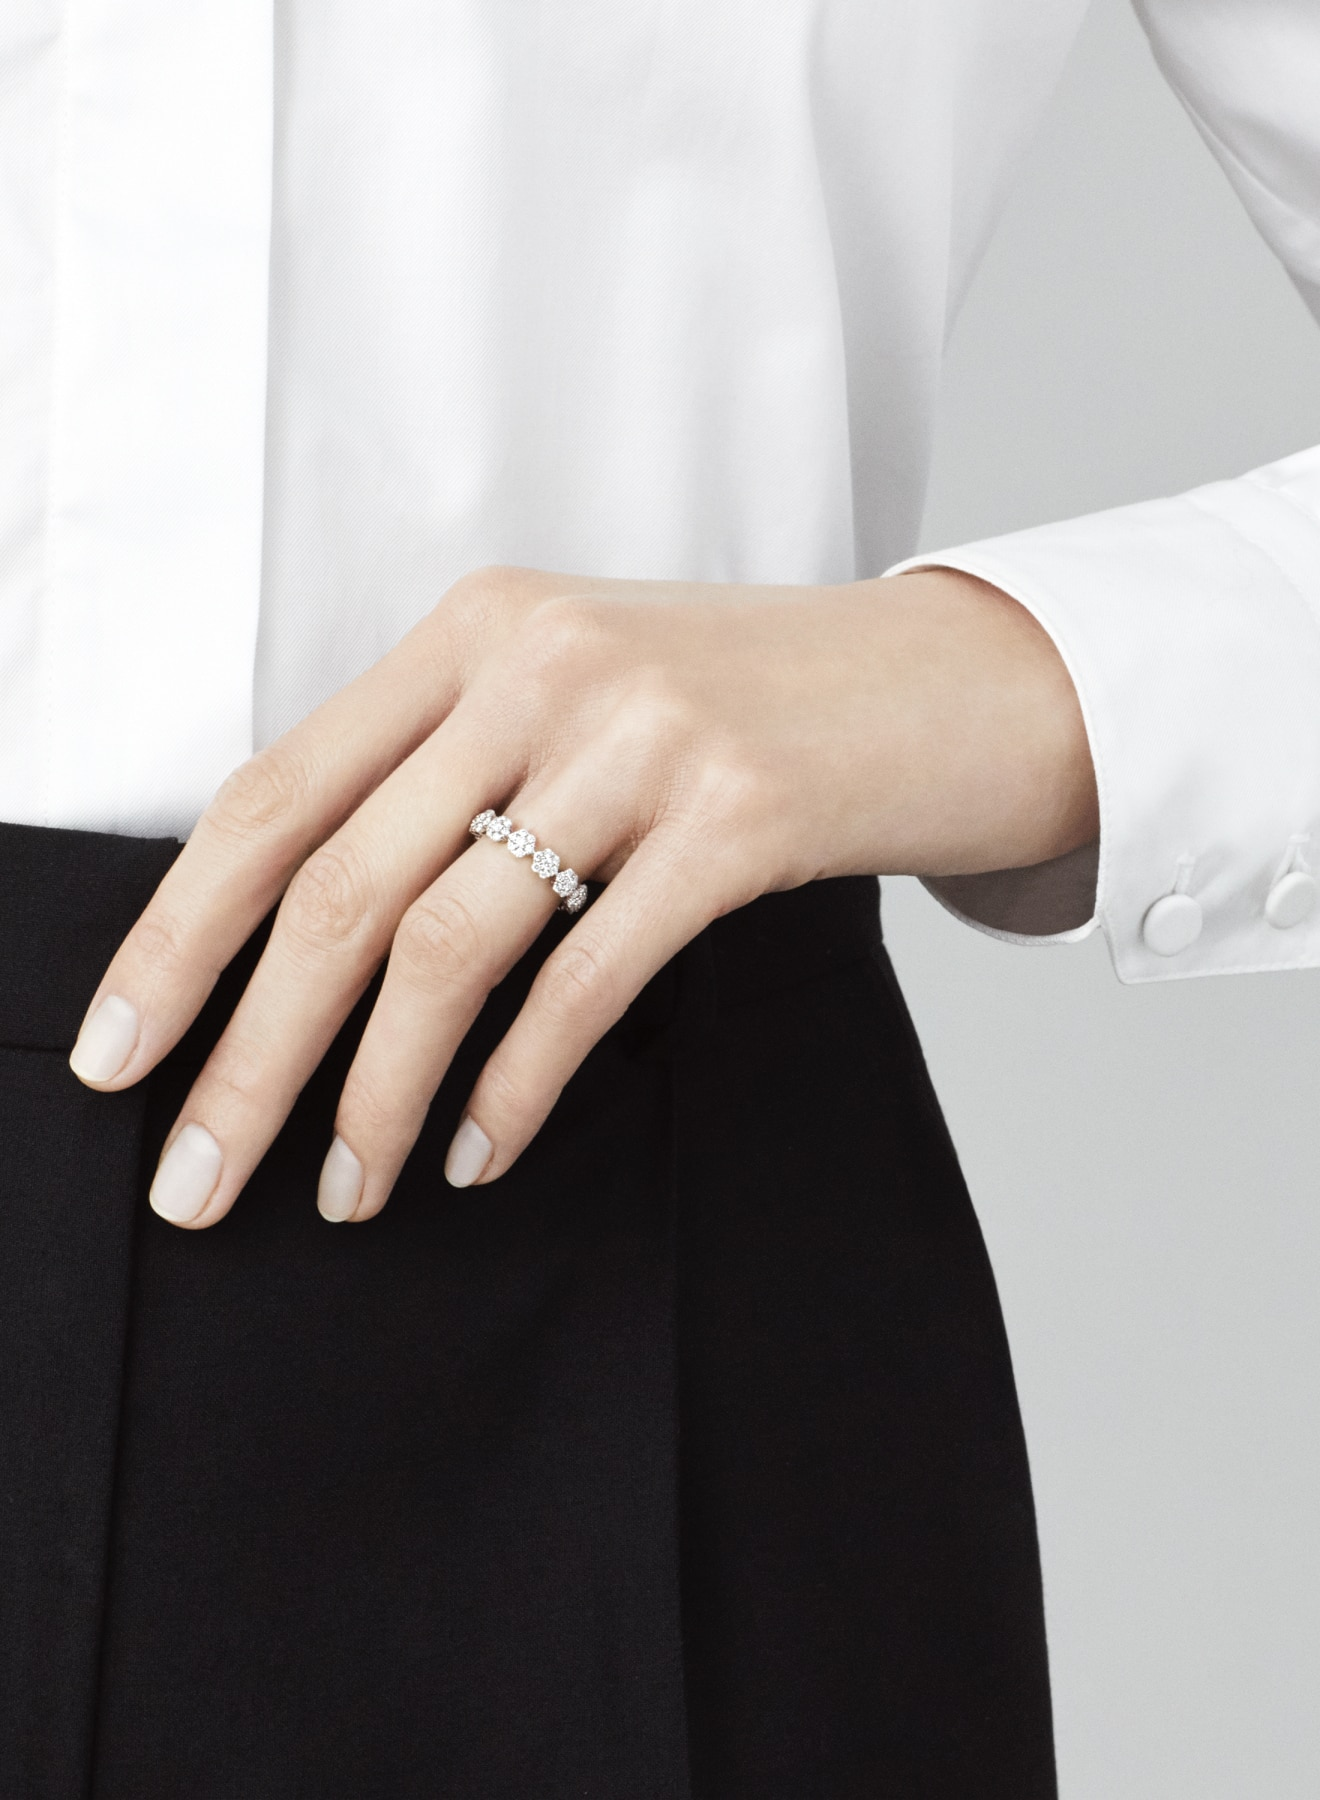 Fleurette collection, ring, white gold and diamonds, Van Cleef & Arpels